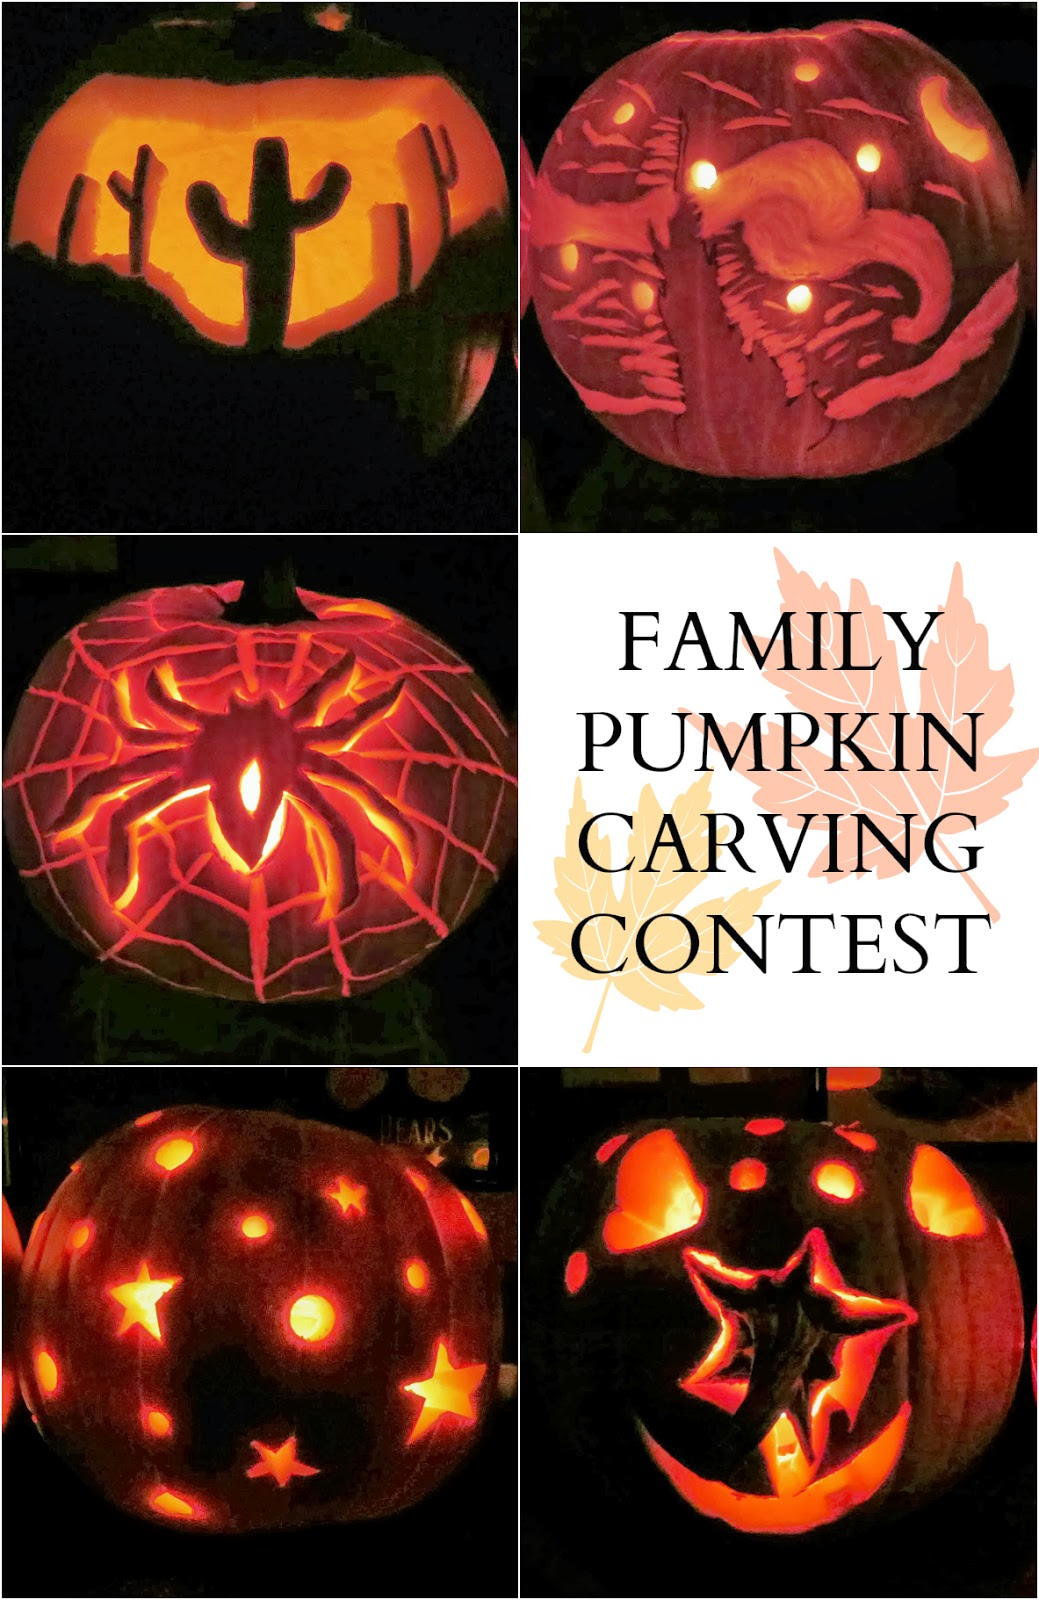 Family Pumpkin Carving Contest, carved pumpkins